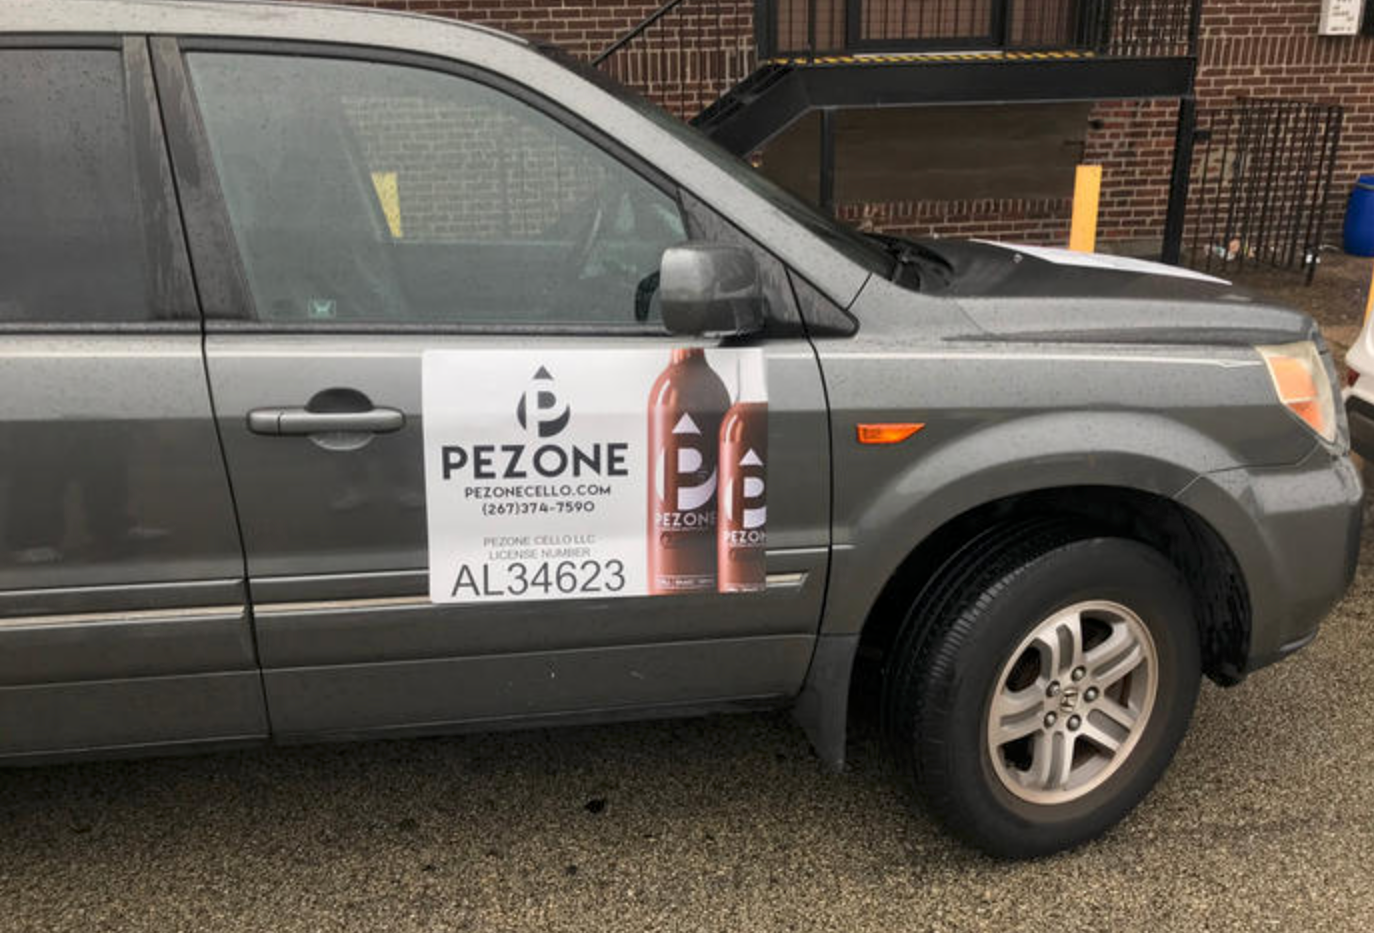 Pezone's delivery vehicle